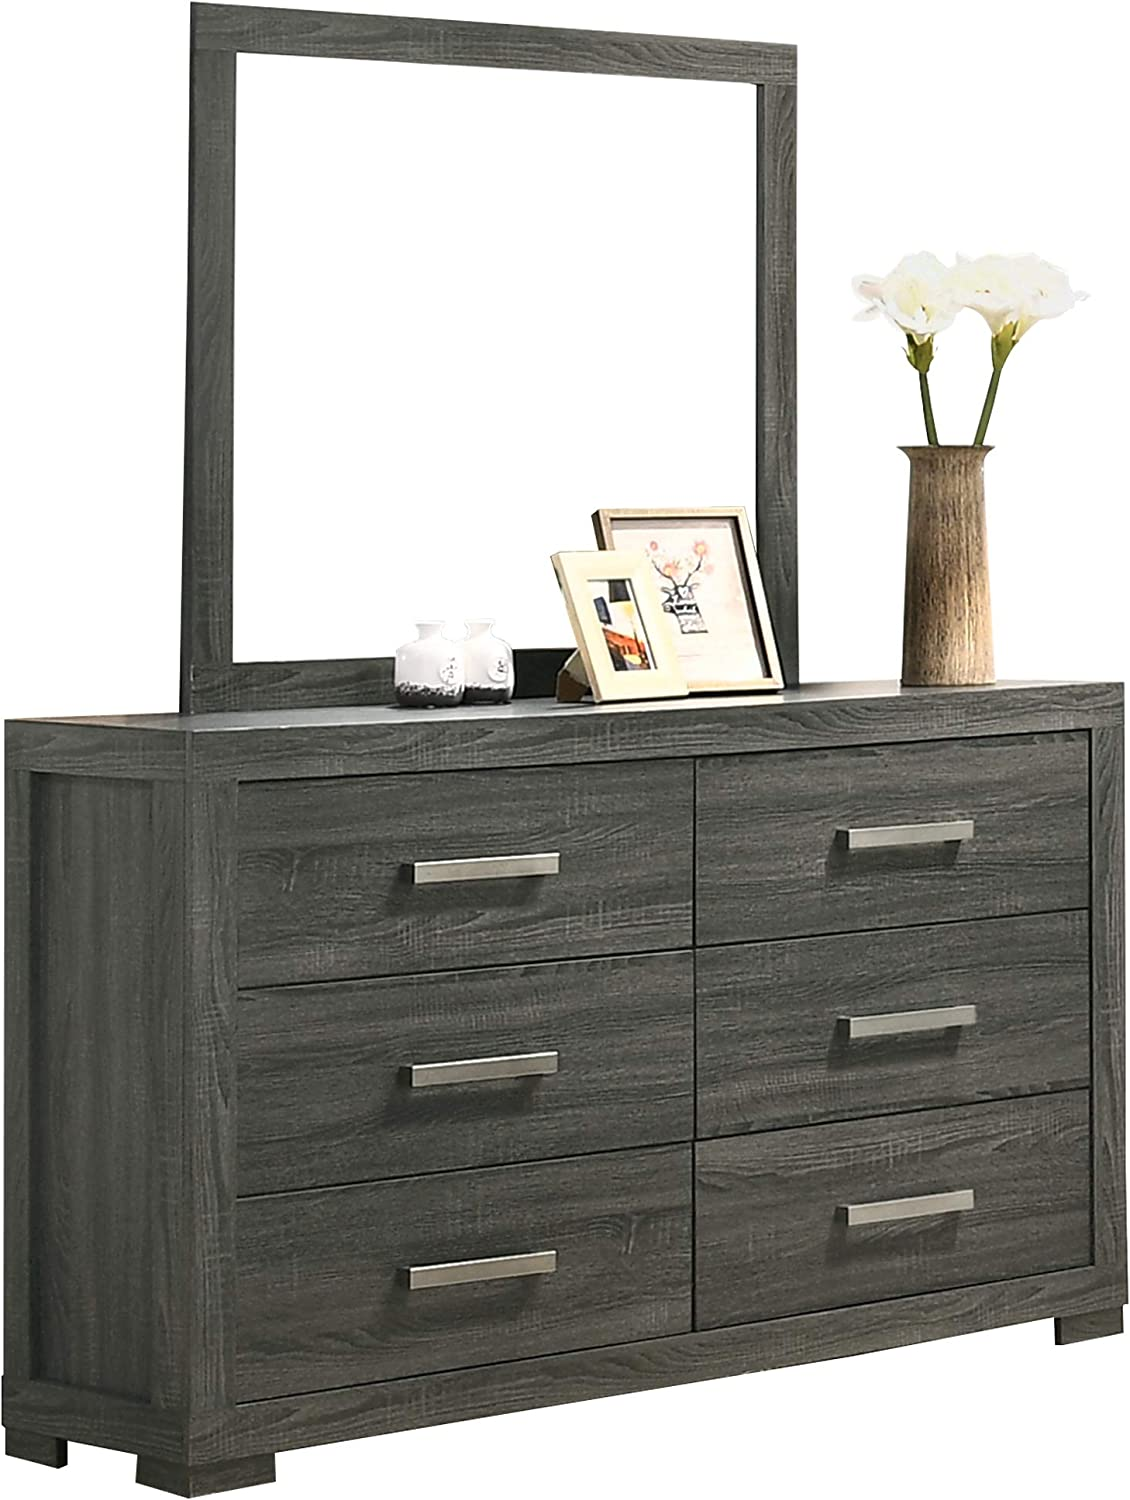 Weathered Gray 2 Nightstands Mirror Best Quality Furniture 6PC California King Bed Dresser Chest